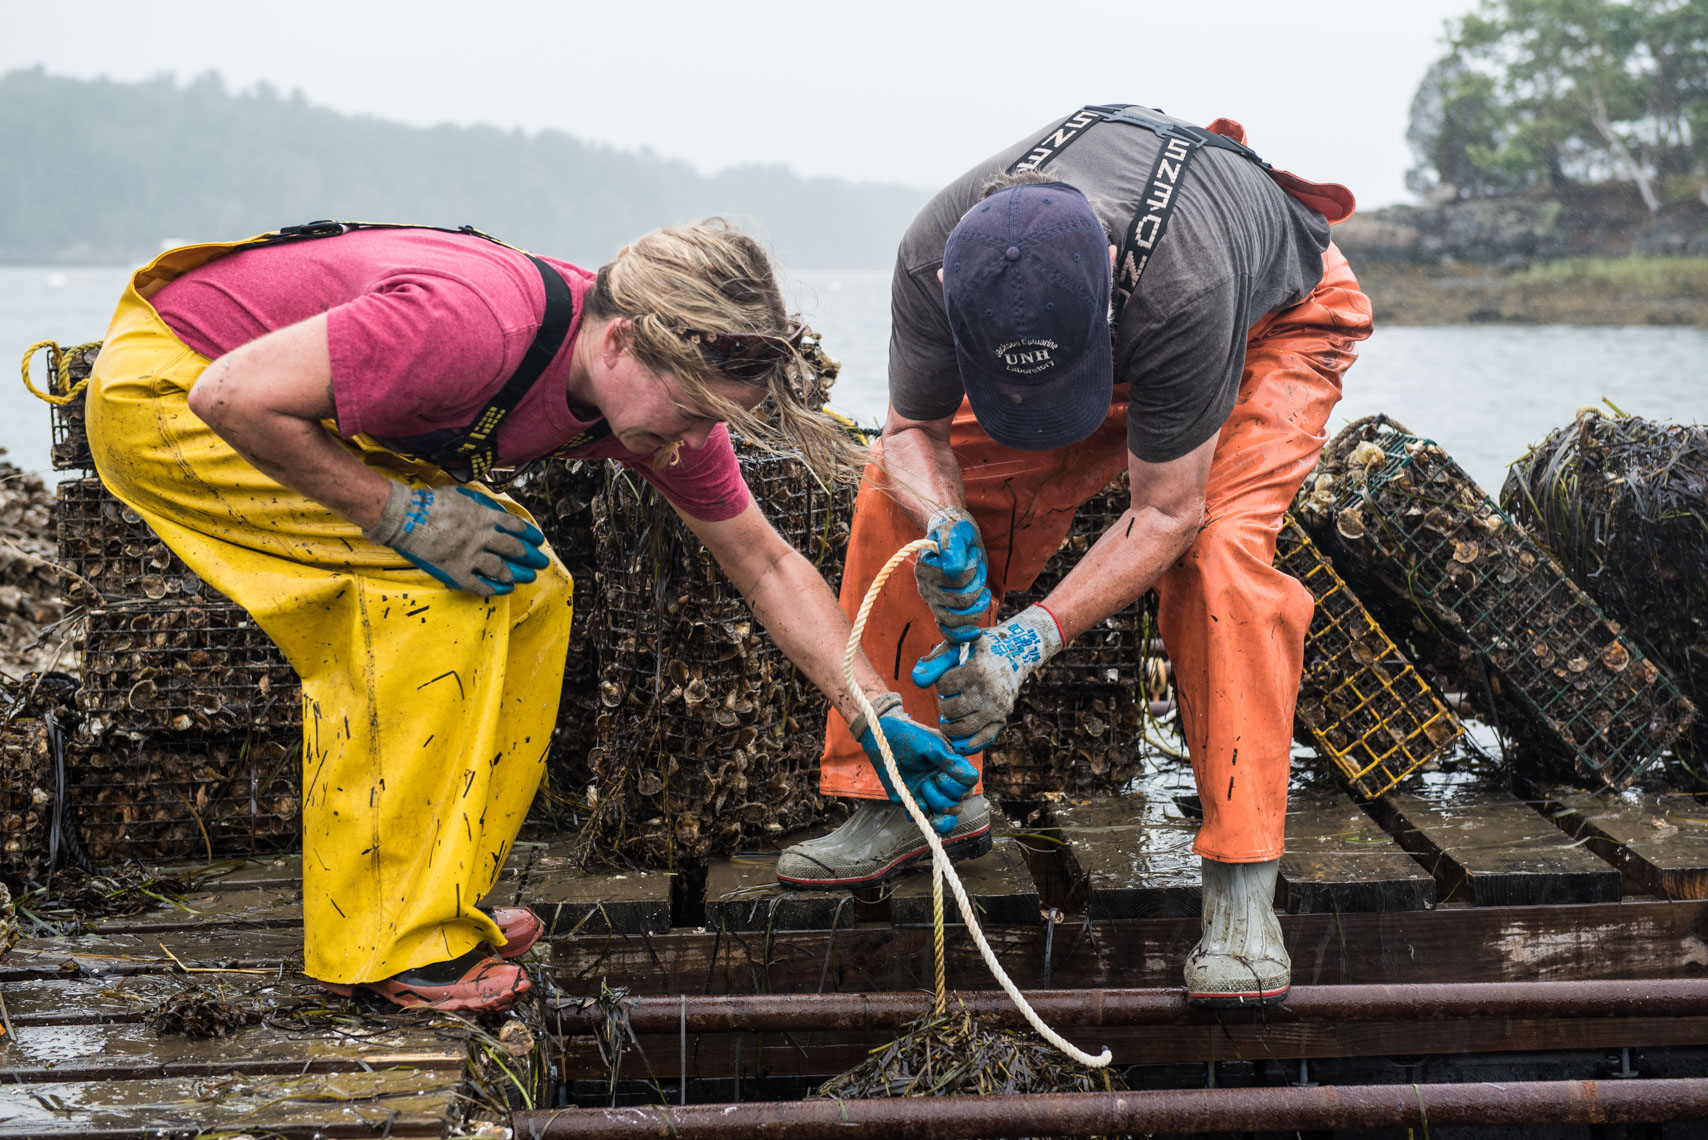 Pulling cages full of oysters